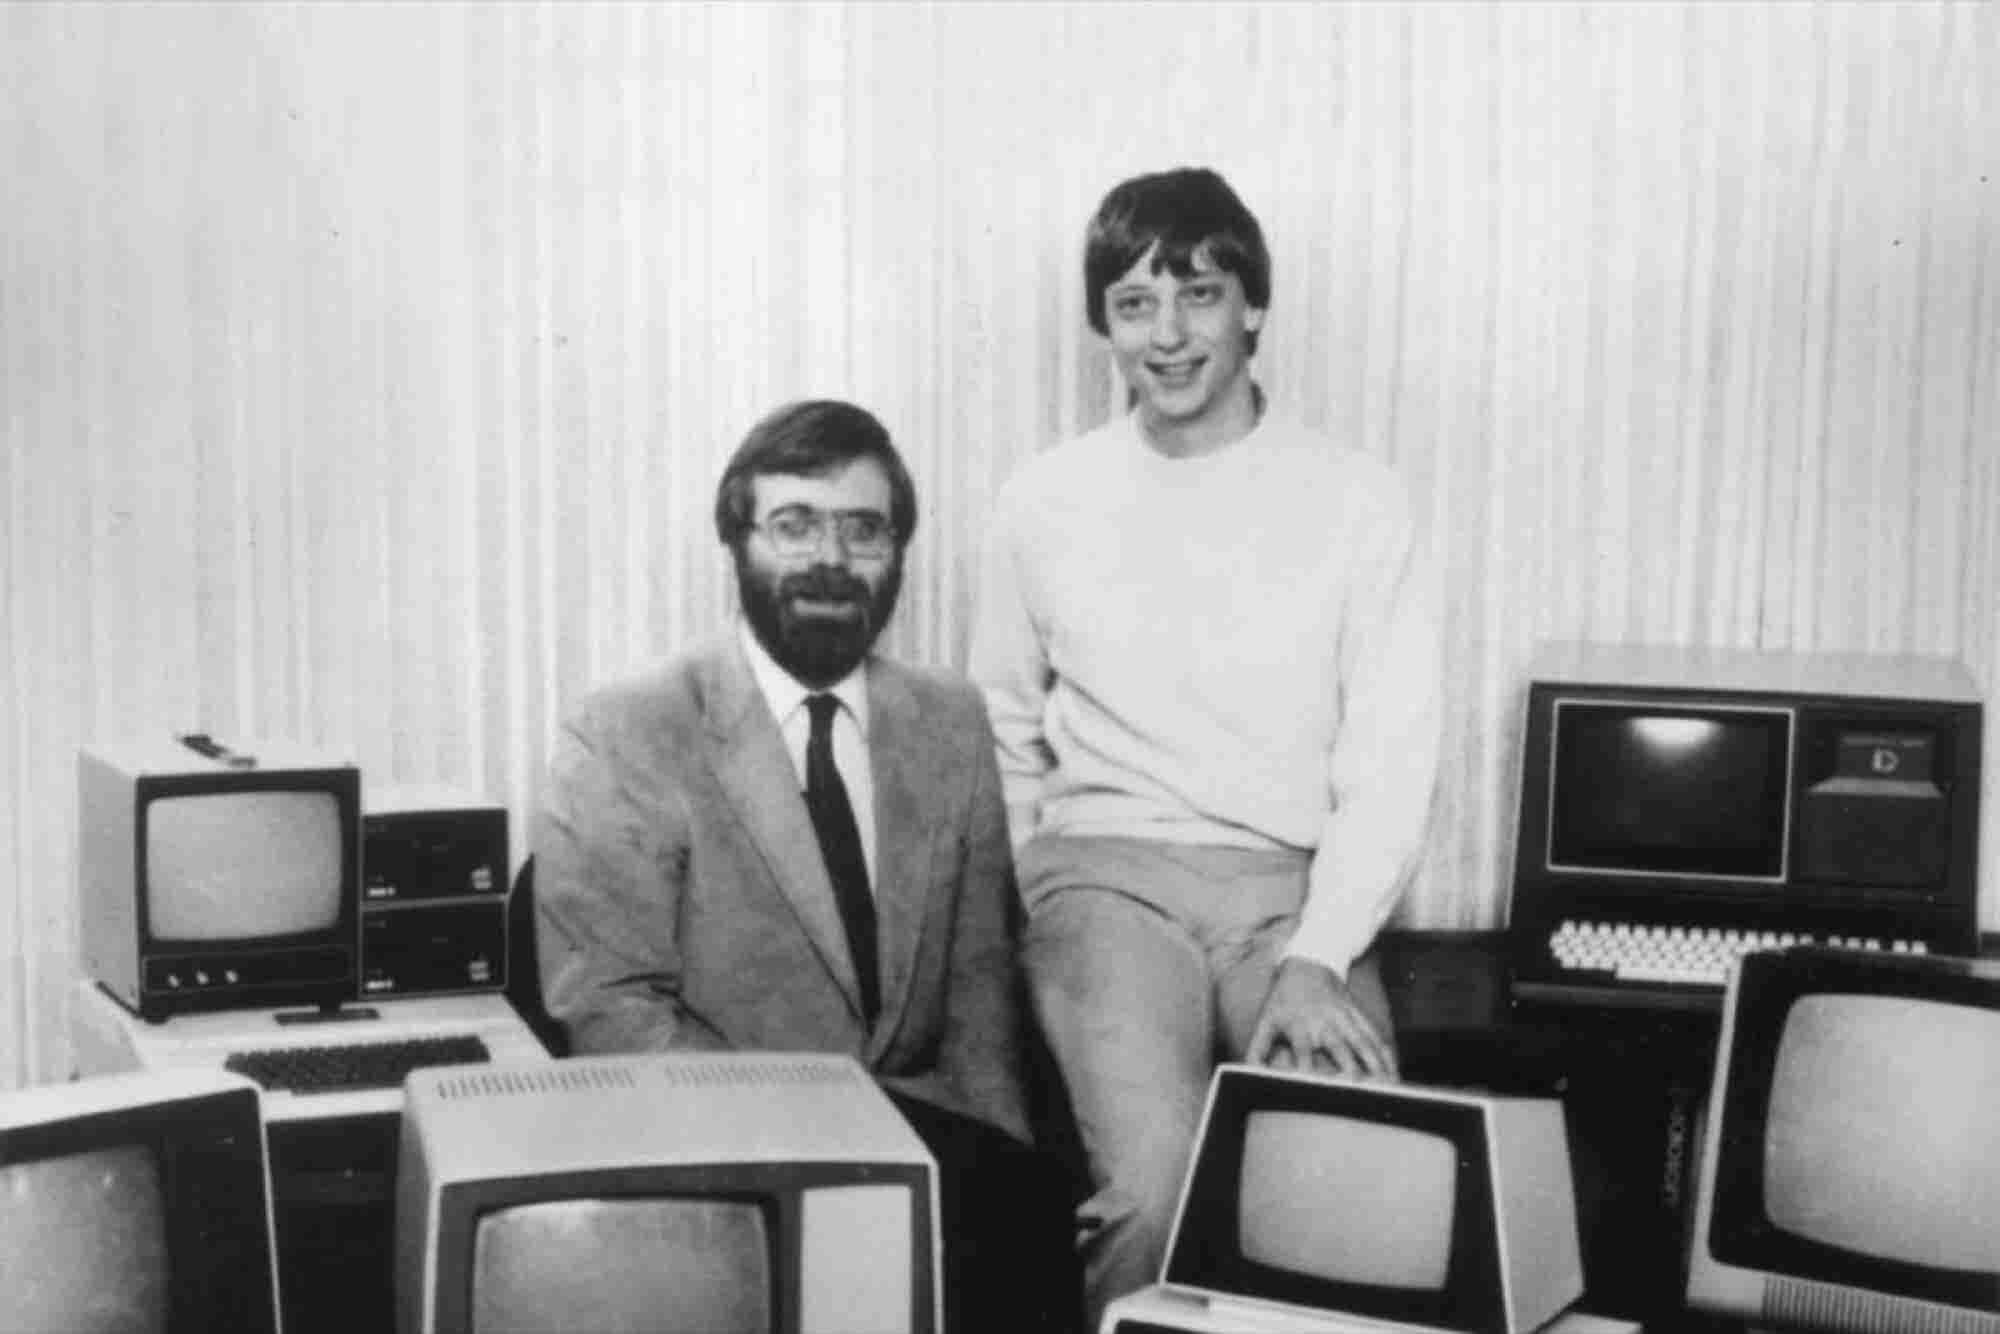 10 Amazing Moments in Microsoft's History, From Its Founding to Deskto...